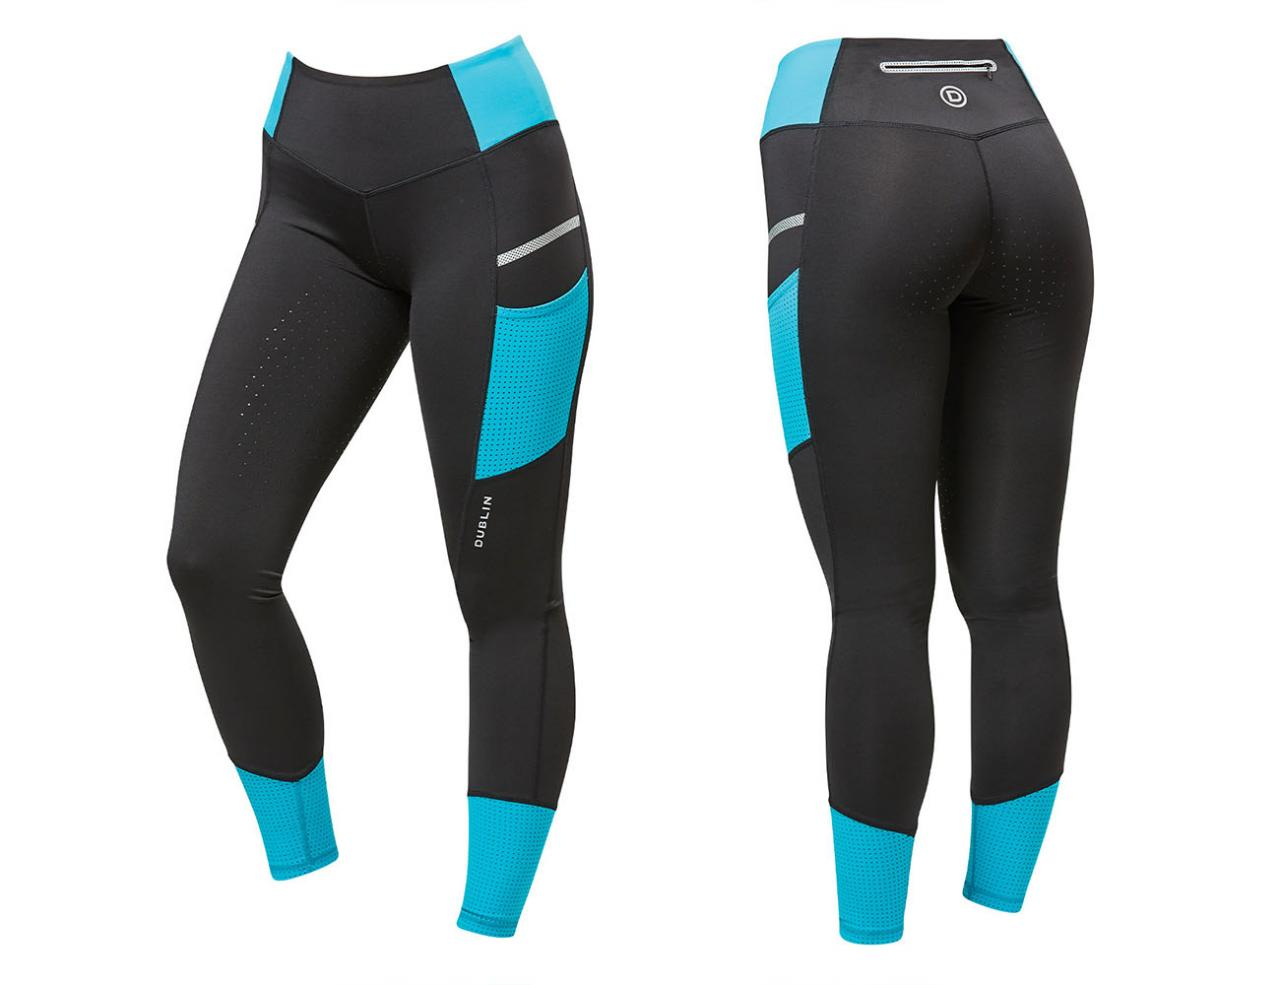 1004929035_DUBLIN-POWER-PERFORMANCE-MID-RISE-COLOUR-BLOCK-TIGHTS_IMAGE_HERO_NULL